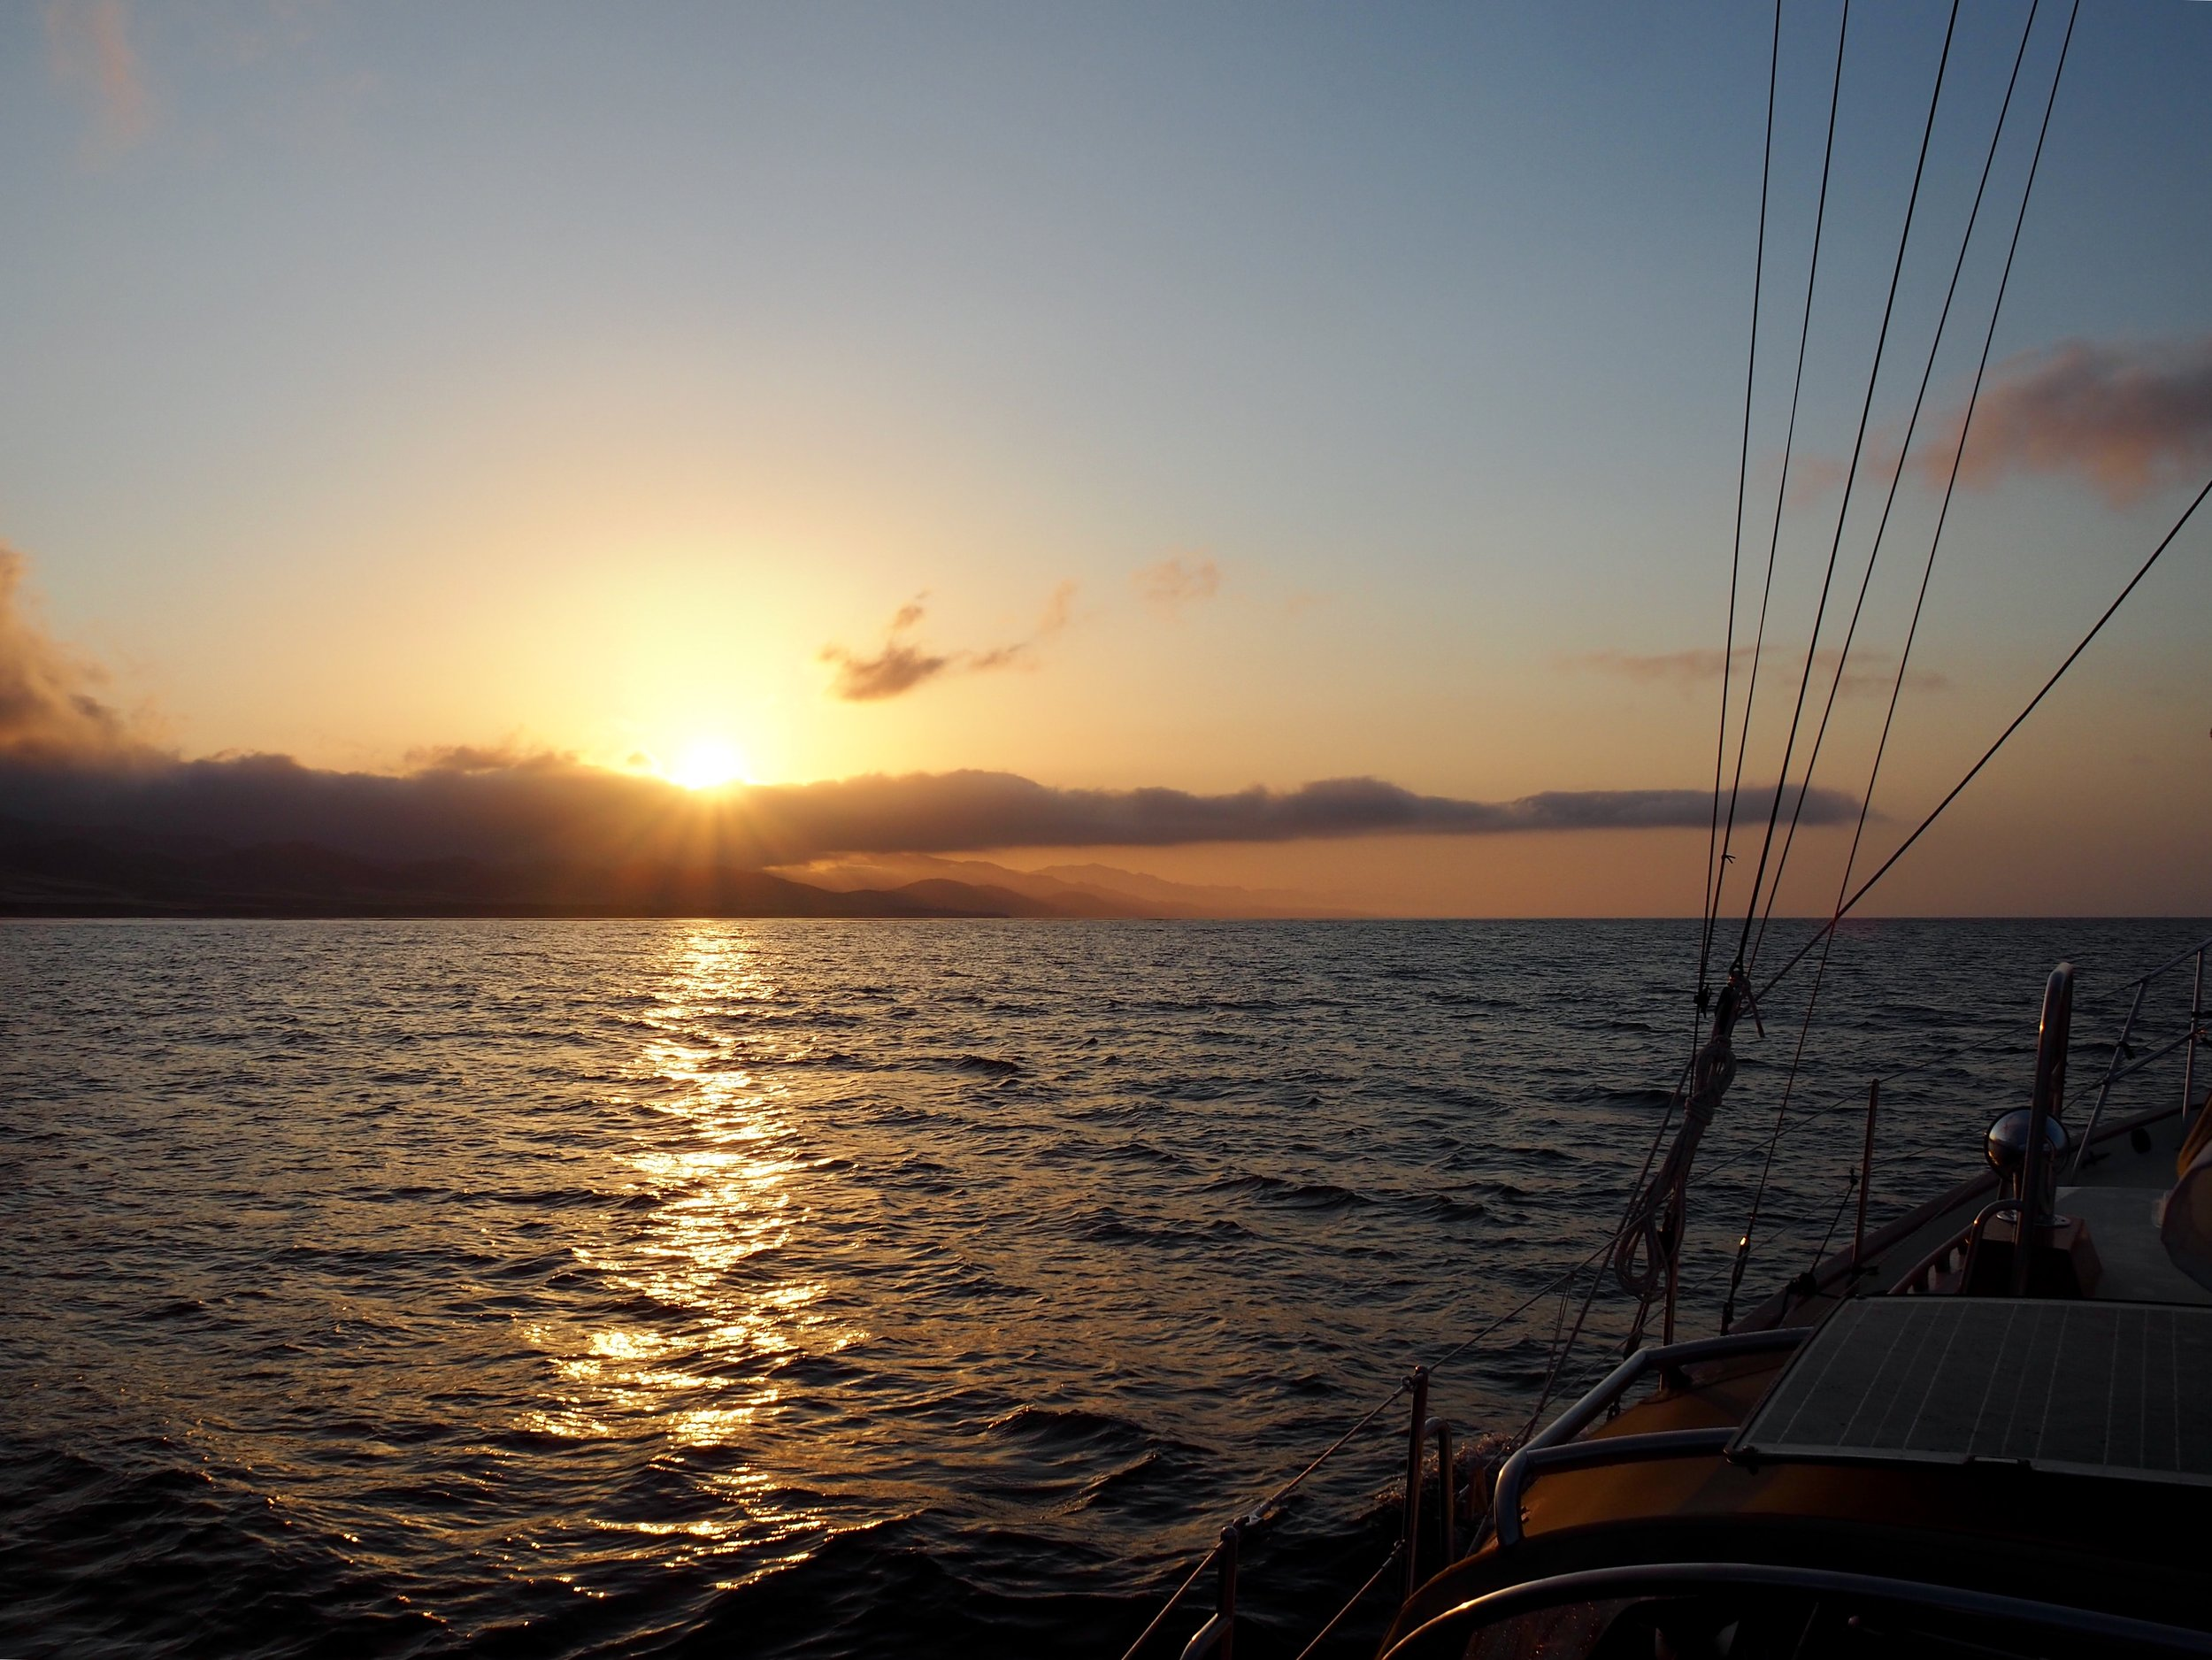 With the dawn, we transitioned from Northern California sailing to Southern California sailing